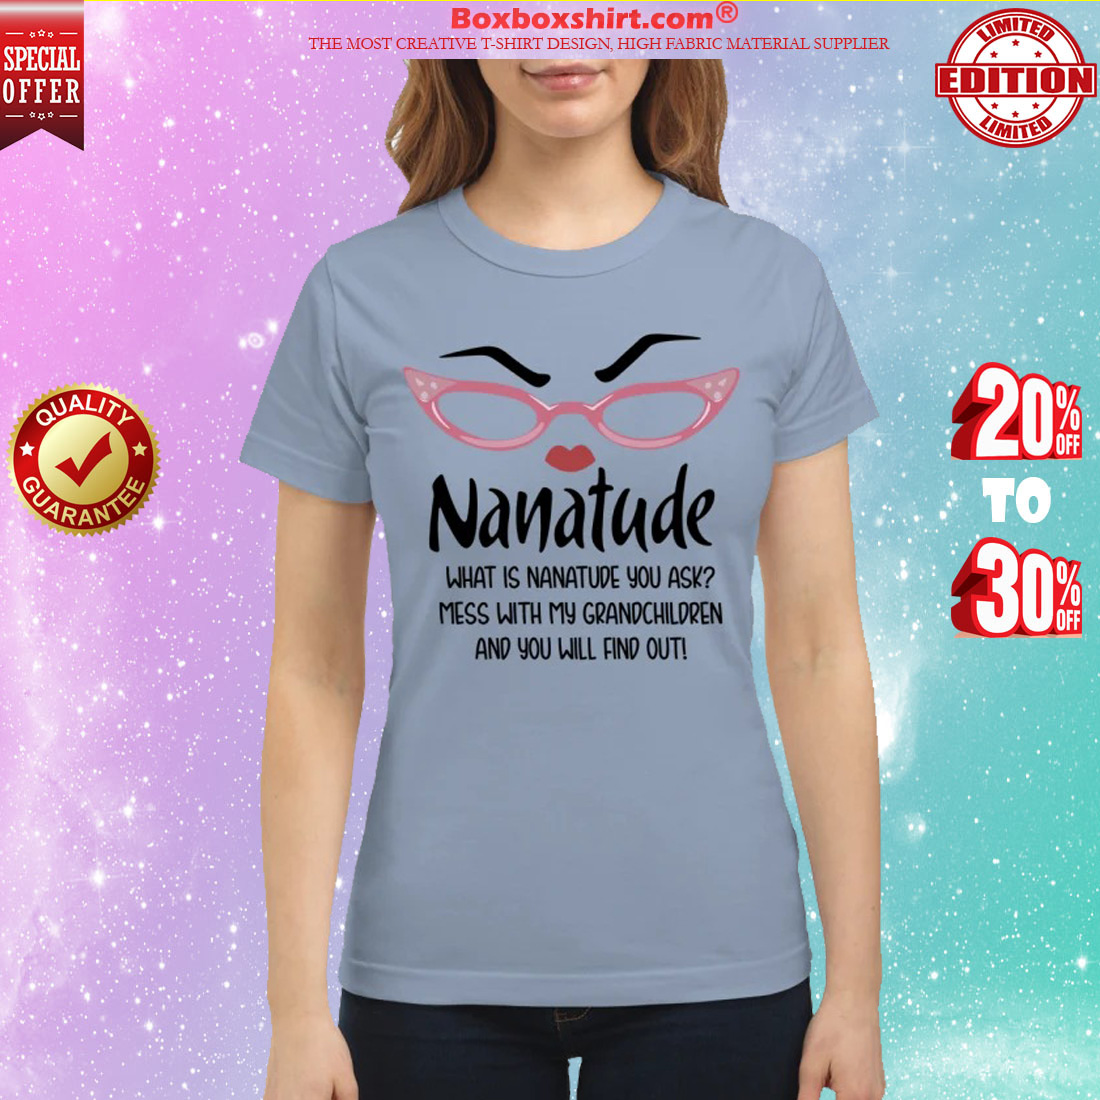 Nanatude what is nanatude you ask mess with my grandchildren classic shirt